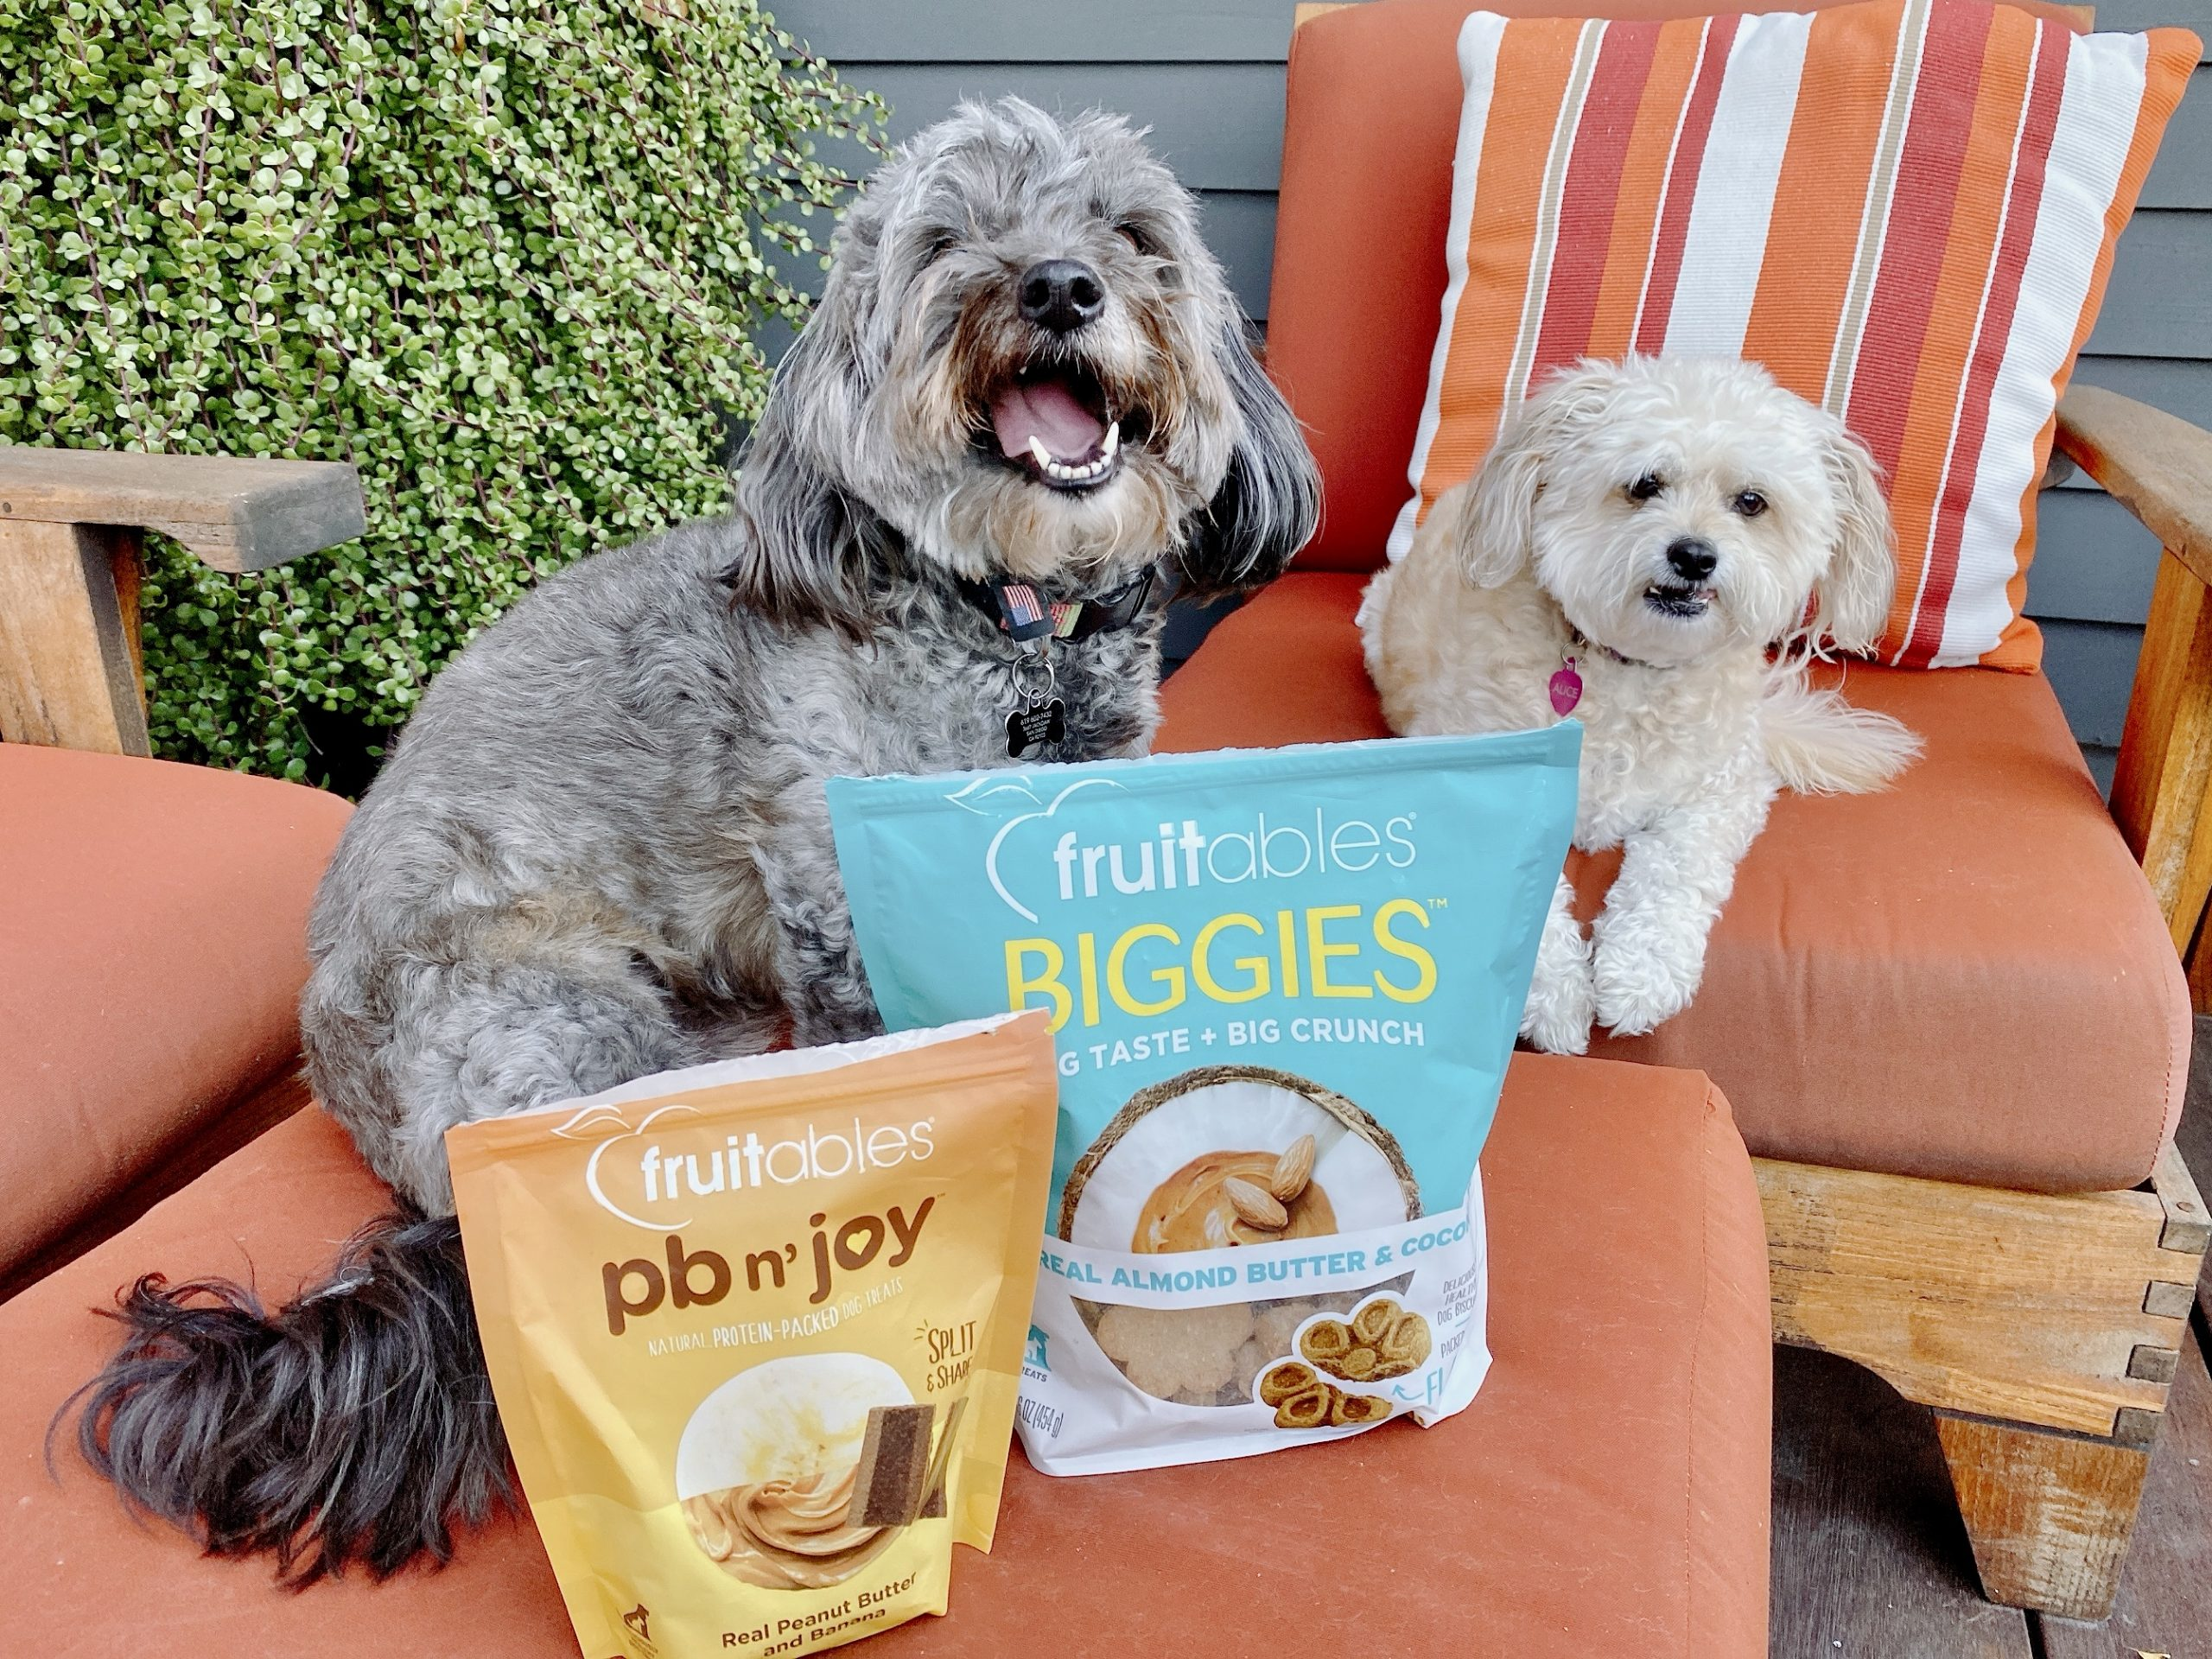 two dogs pose on orange outdoor chairs with bags of dog treats from fruitables